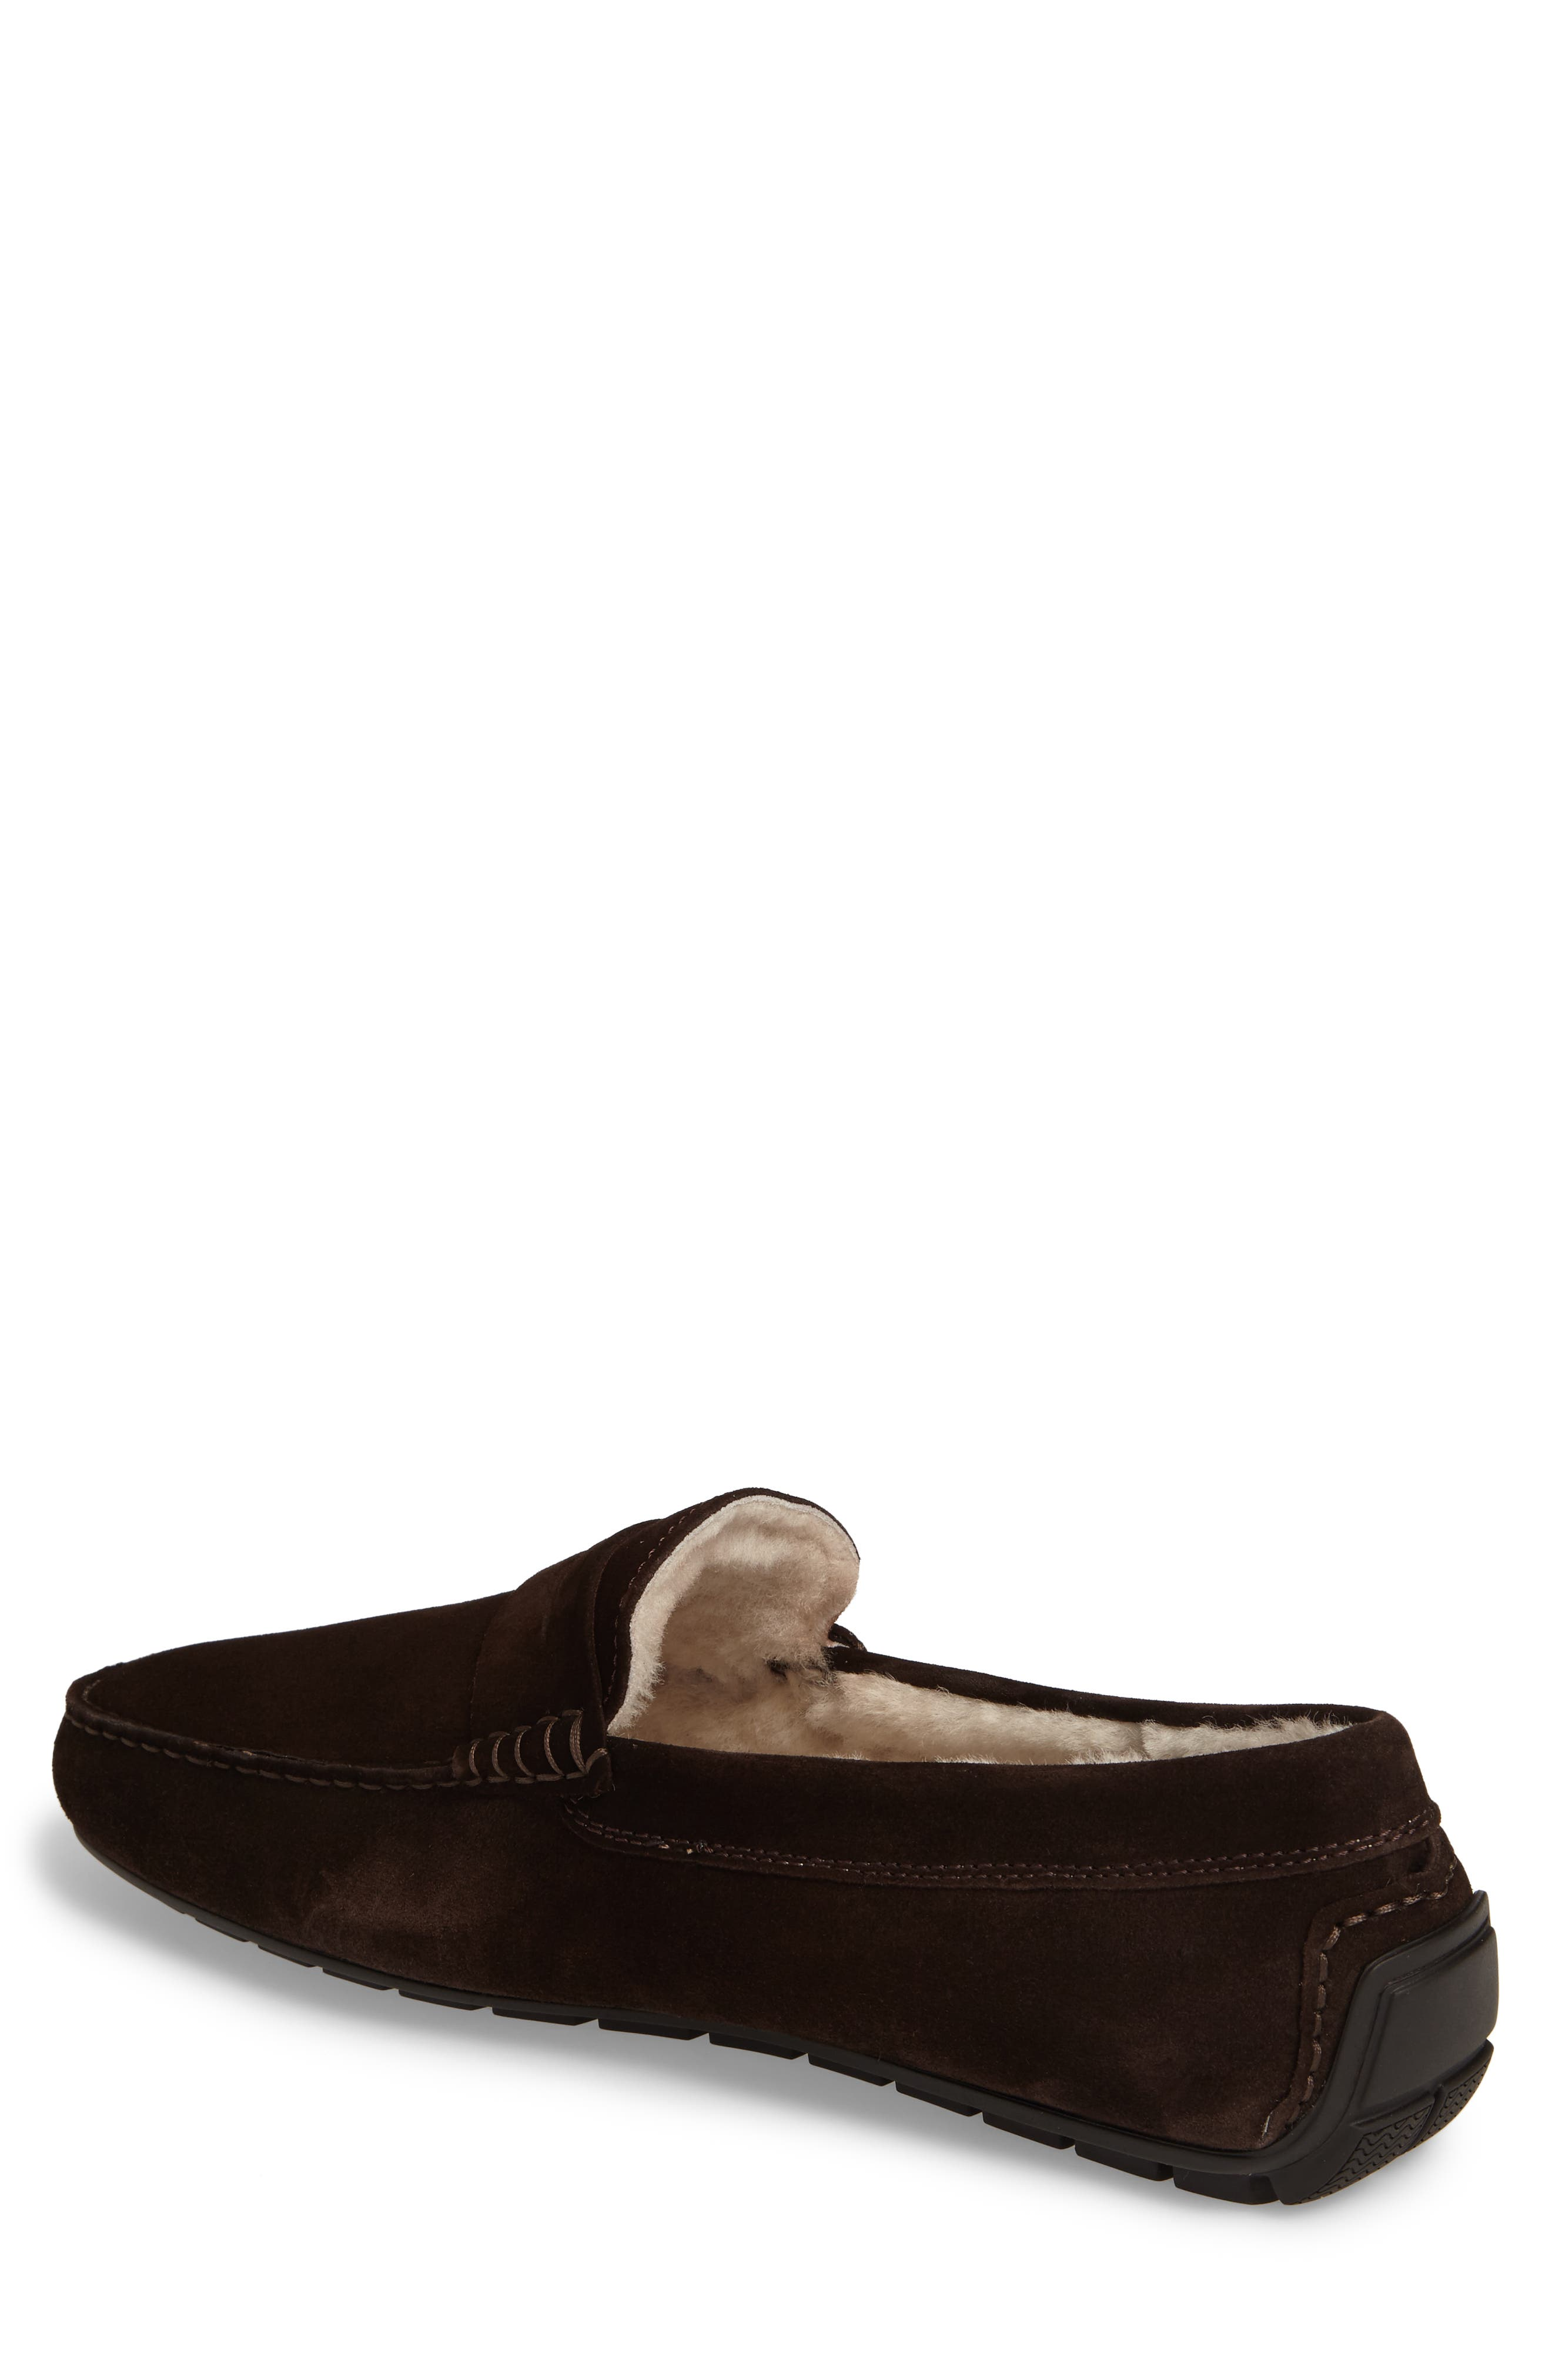 Norse Penny Loafer with Genuine Shearling,                             Alternate thumbnail 4, color,